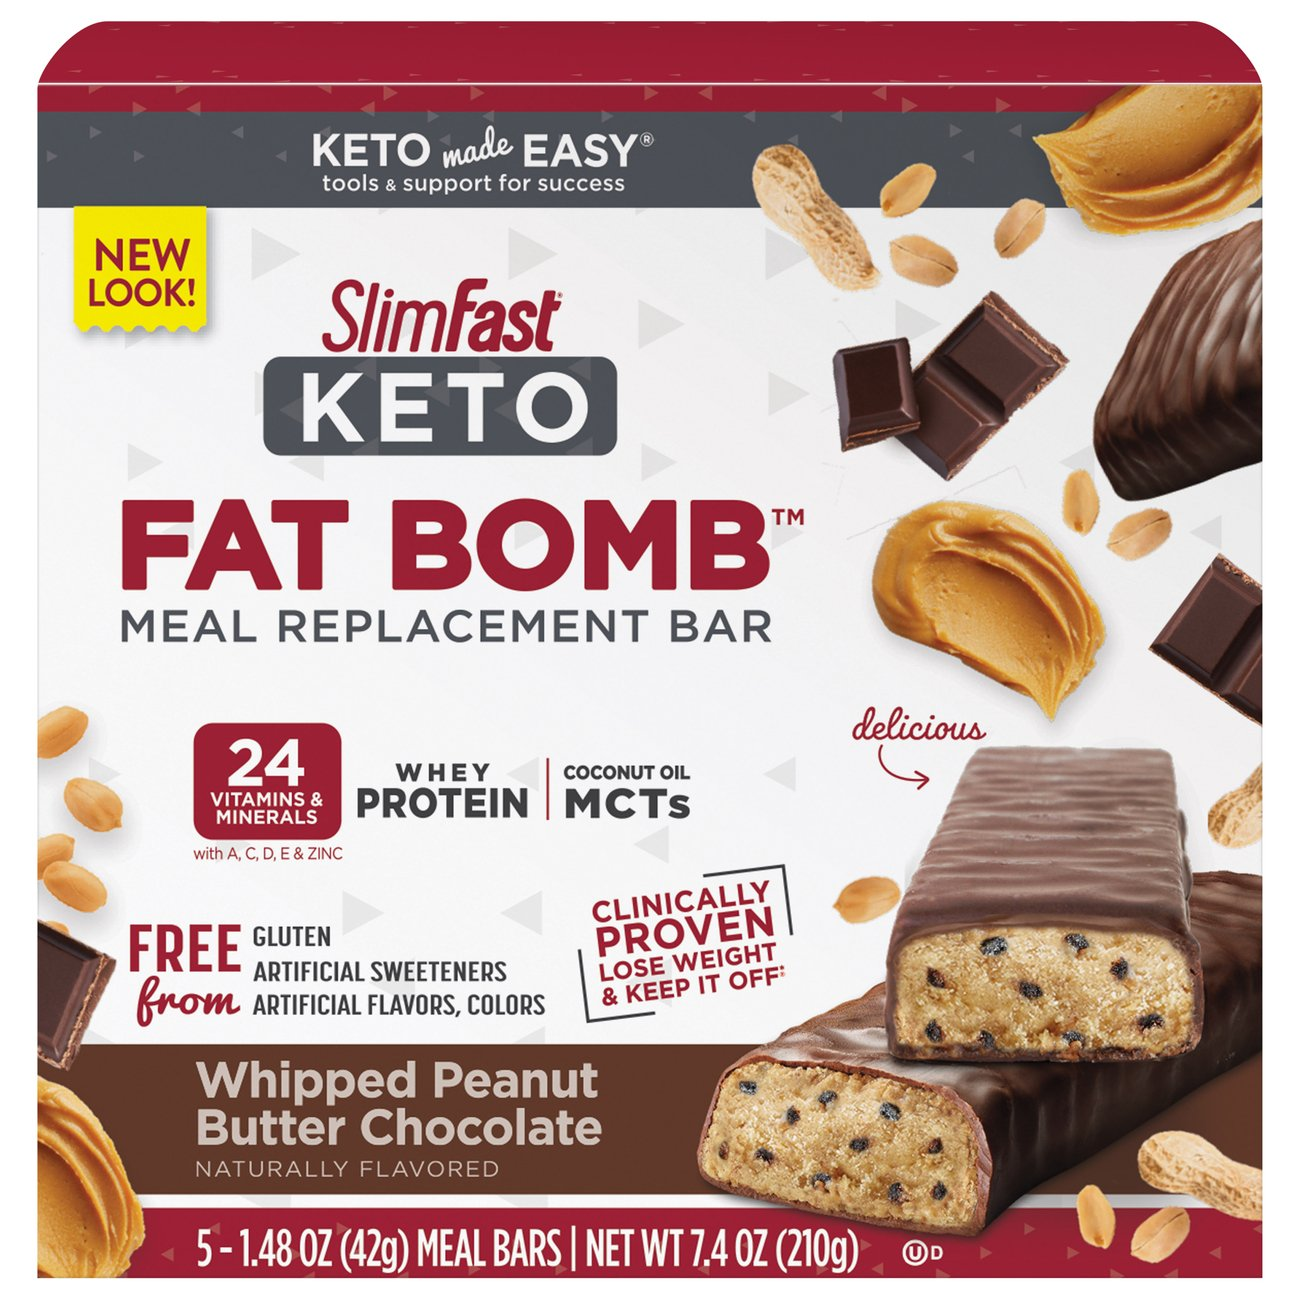 Slimfast Keto Whipped Peanut Butter Chocolate Meal Bar Shop Diet Fitness At H E B